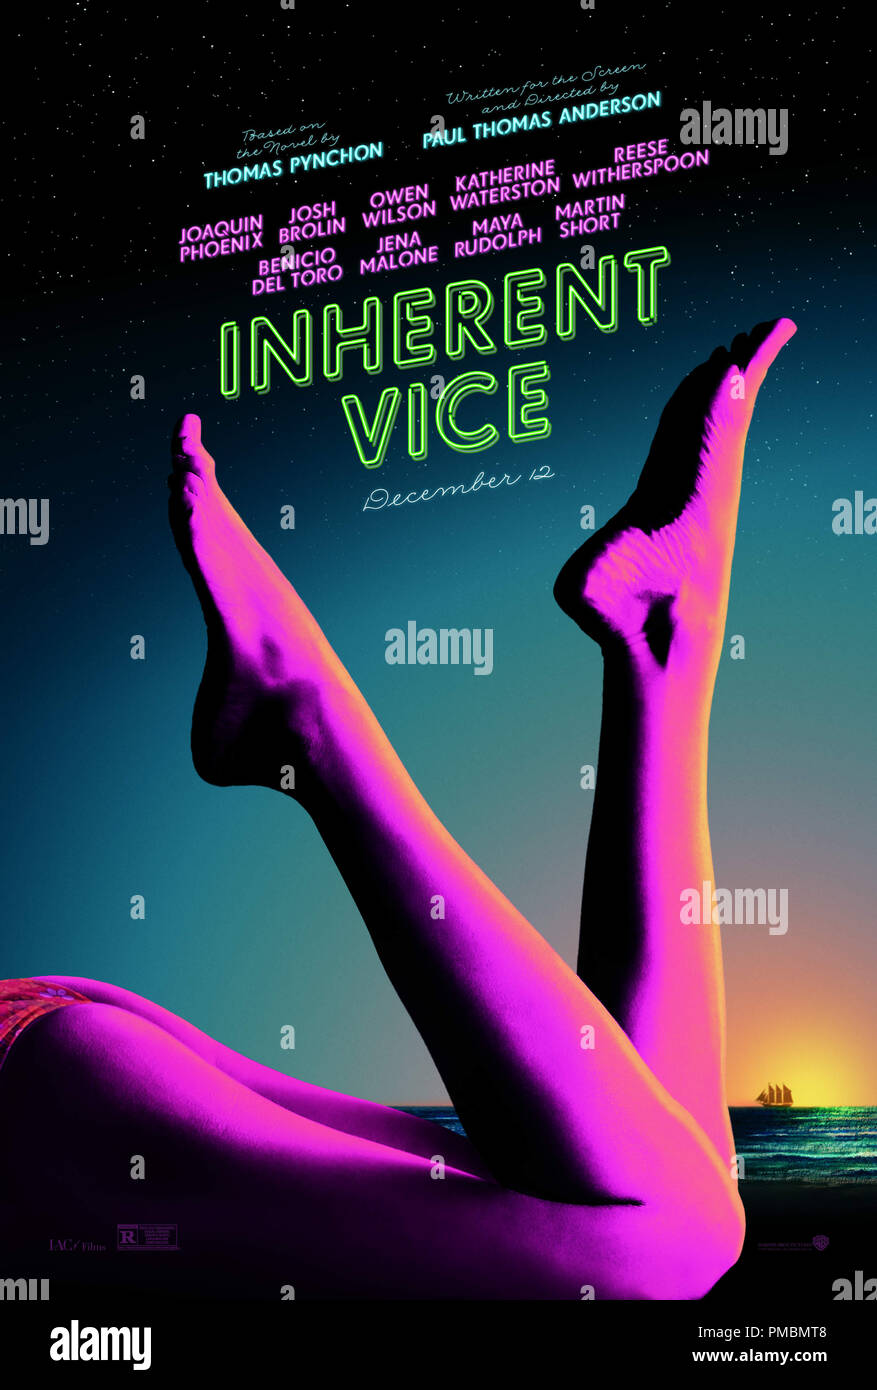 'Inherent Vice' Poster - Stock Image